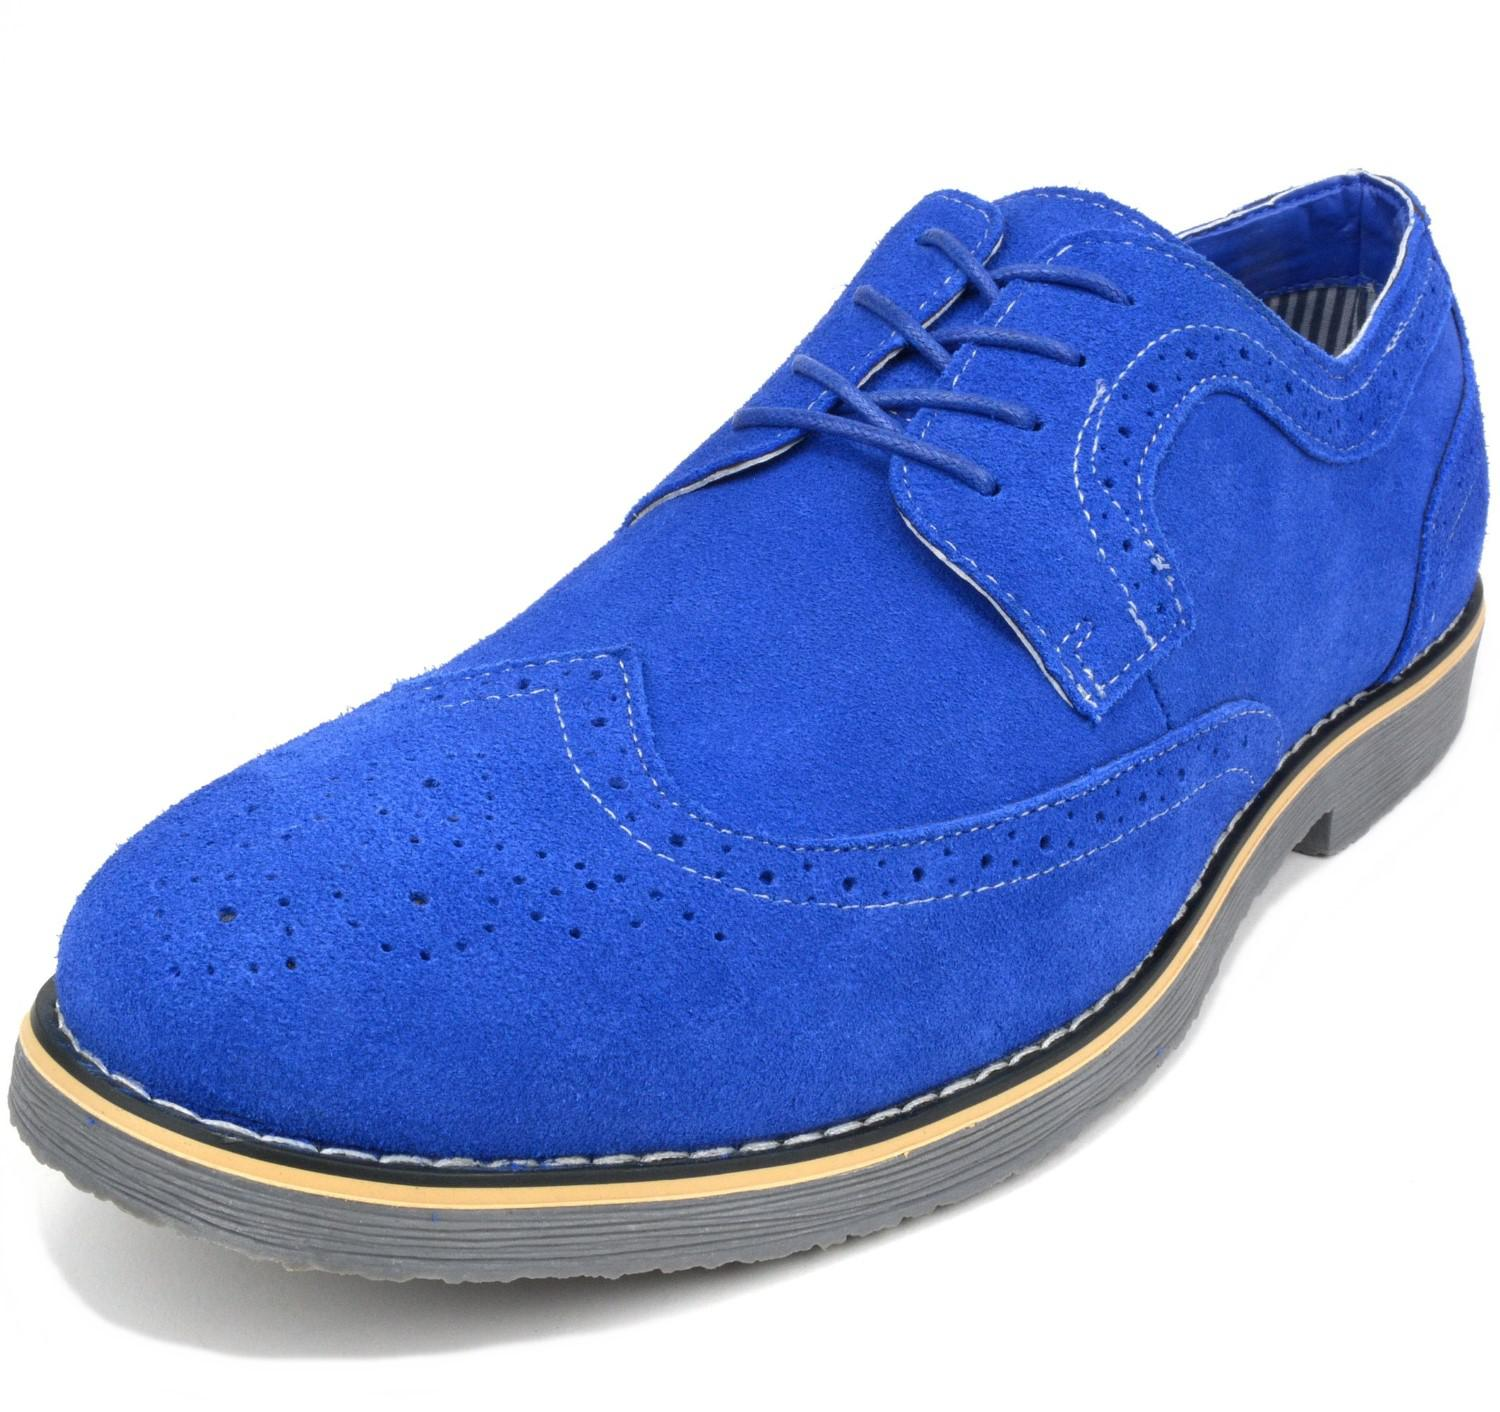 ad5aa40999c8 Lyst - Alpine Swiss Beau Mens Dress Shoes Genuine Suede Wing Tip ...